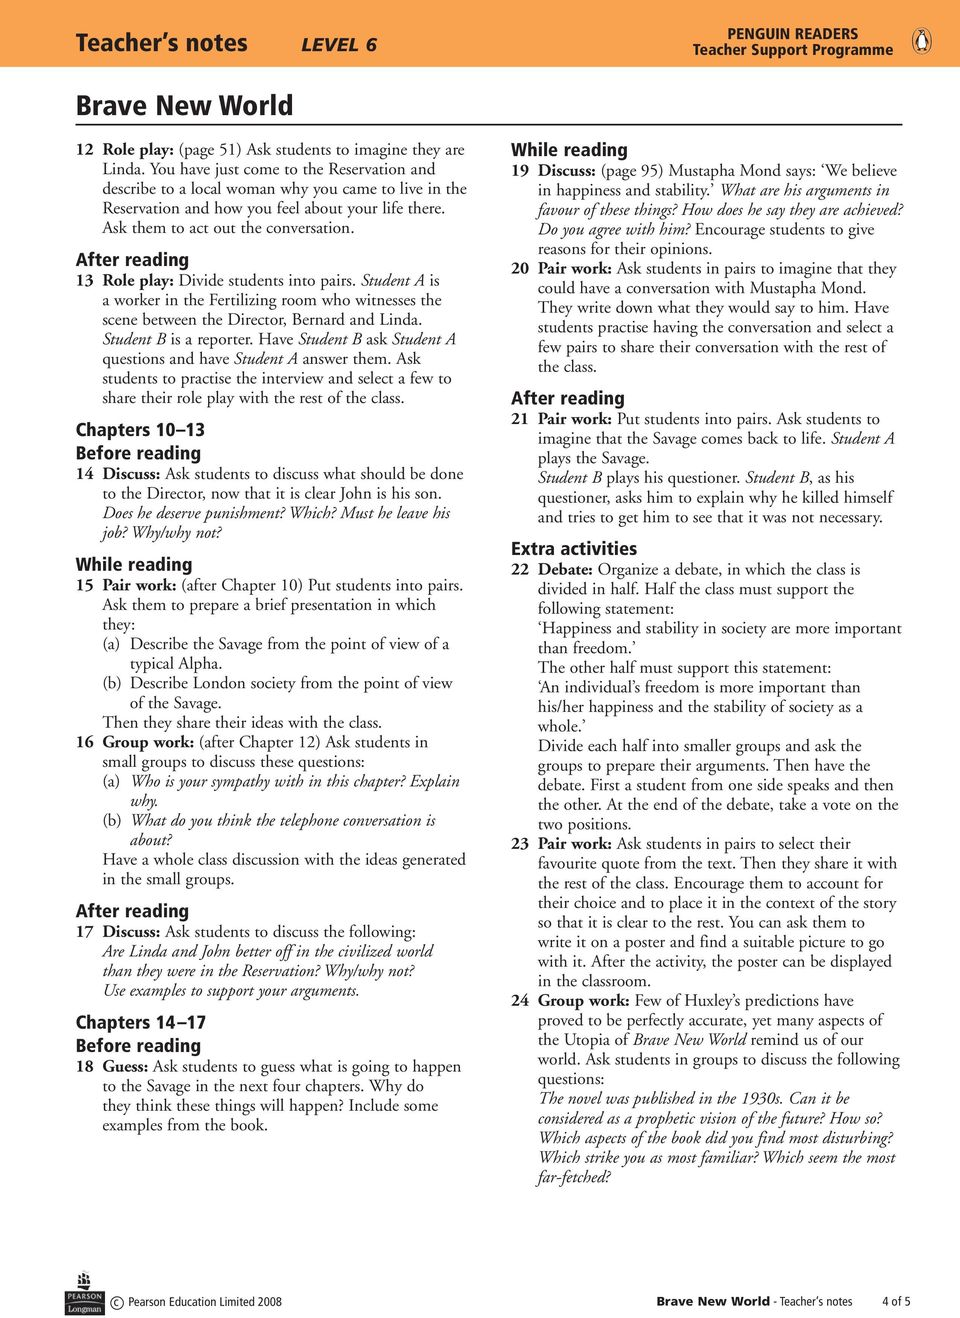 brave new world essay prompts summary chapter one brave new world  summary chapter one brave new world resume format examples summary chapter one brave new world brave